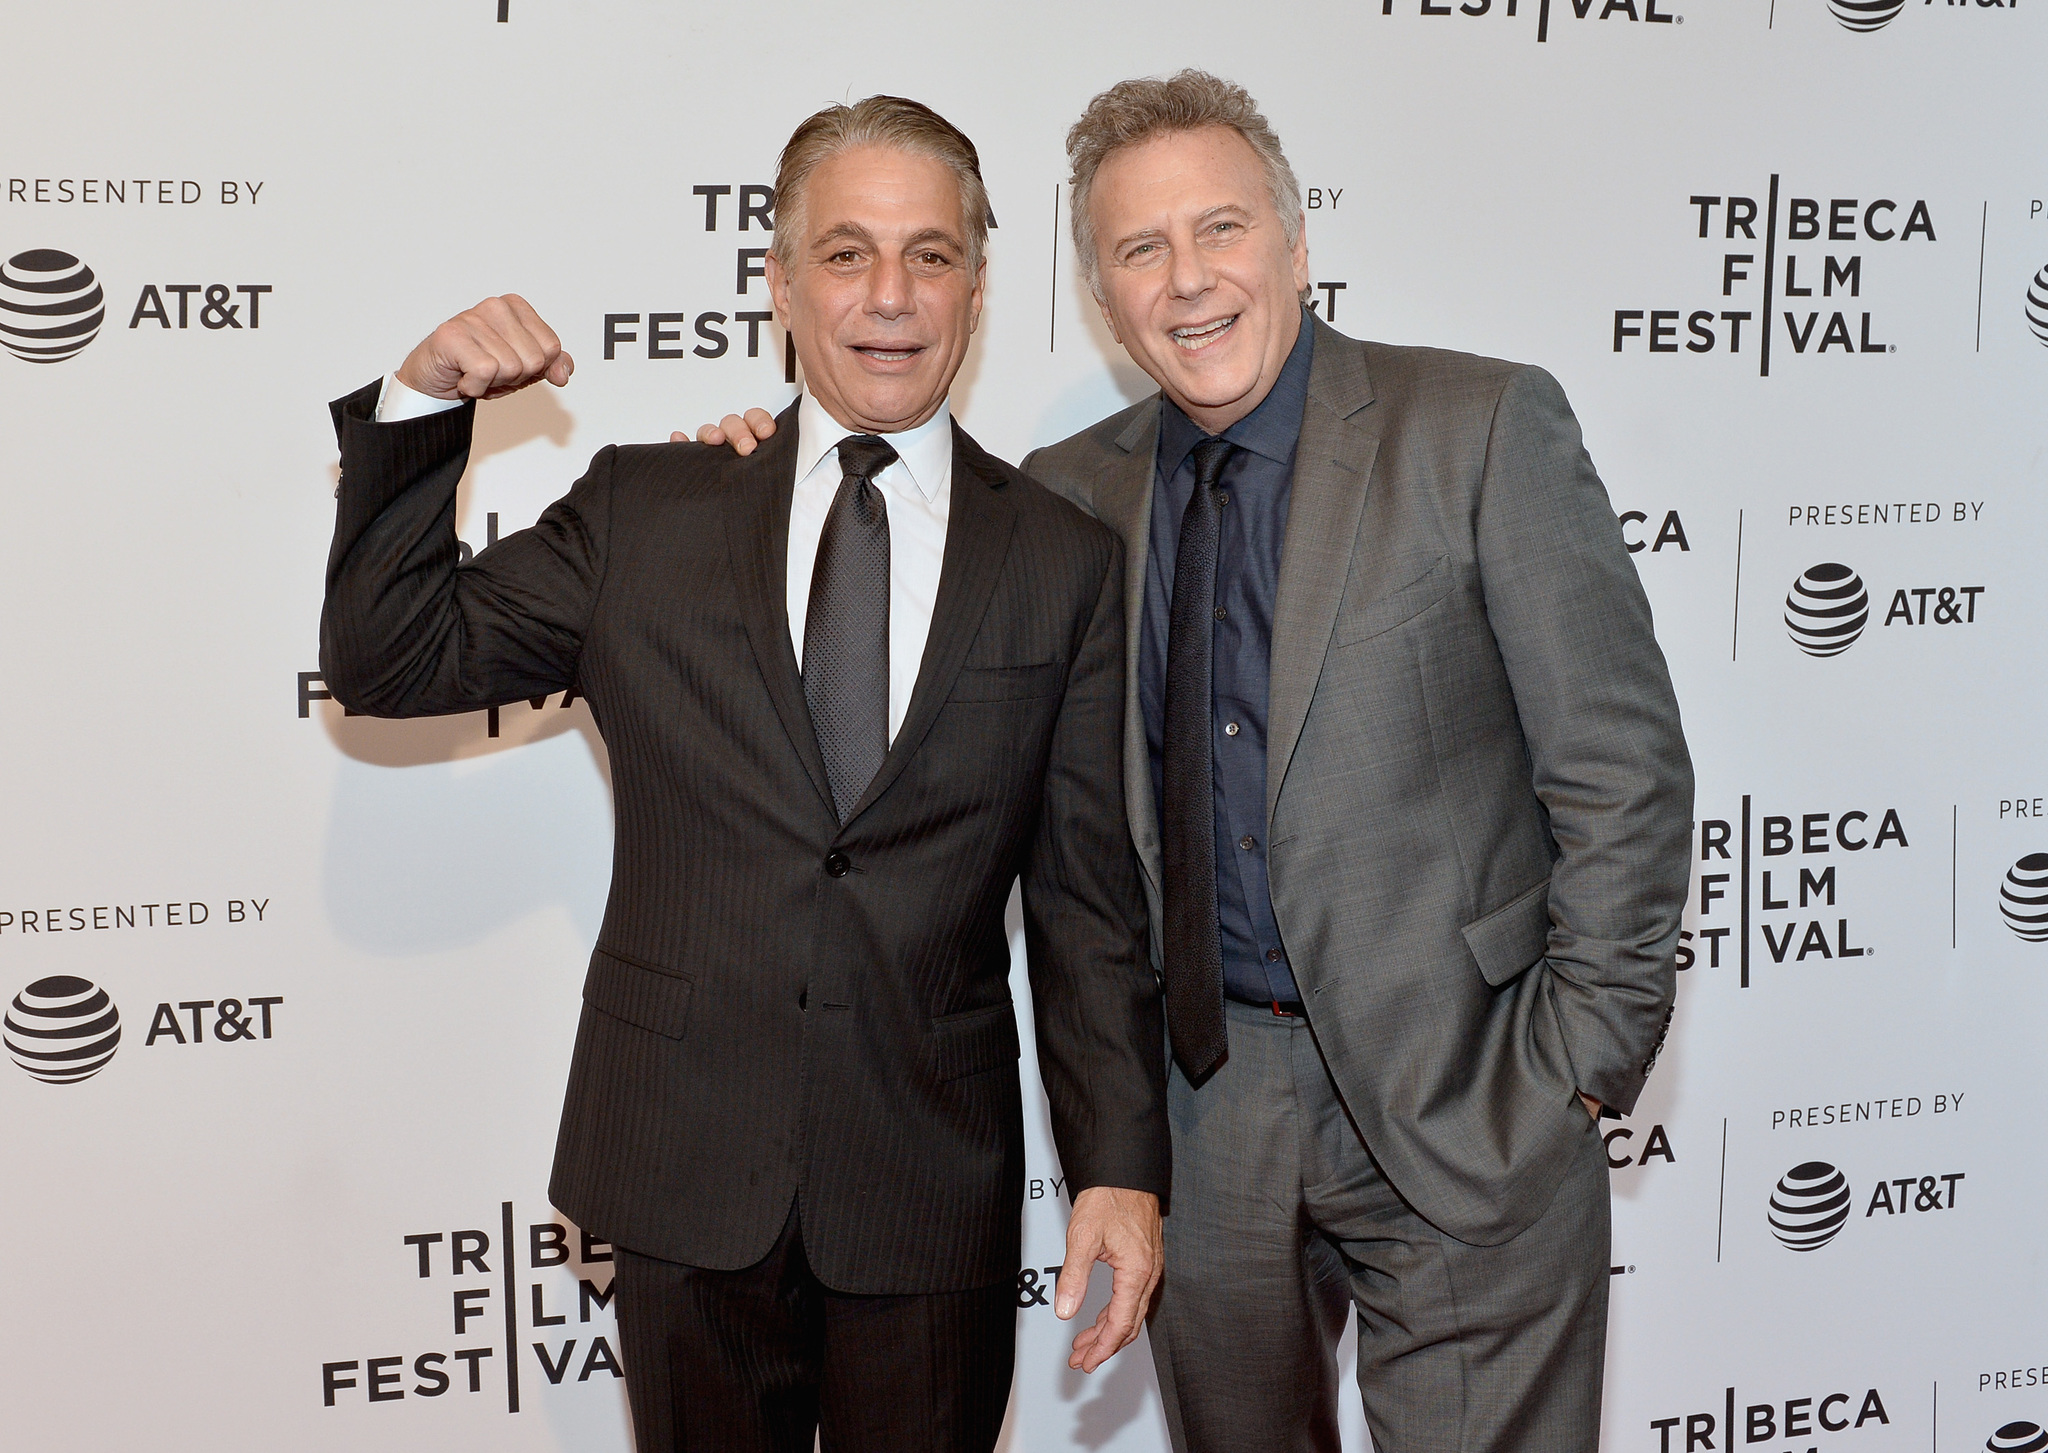 Tony Danza and Paul Reiser at an event for There's... Johnny! (2017)